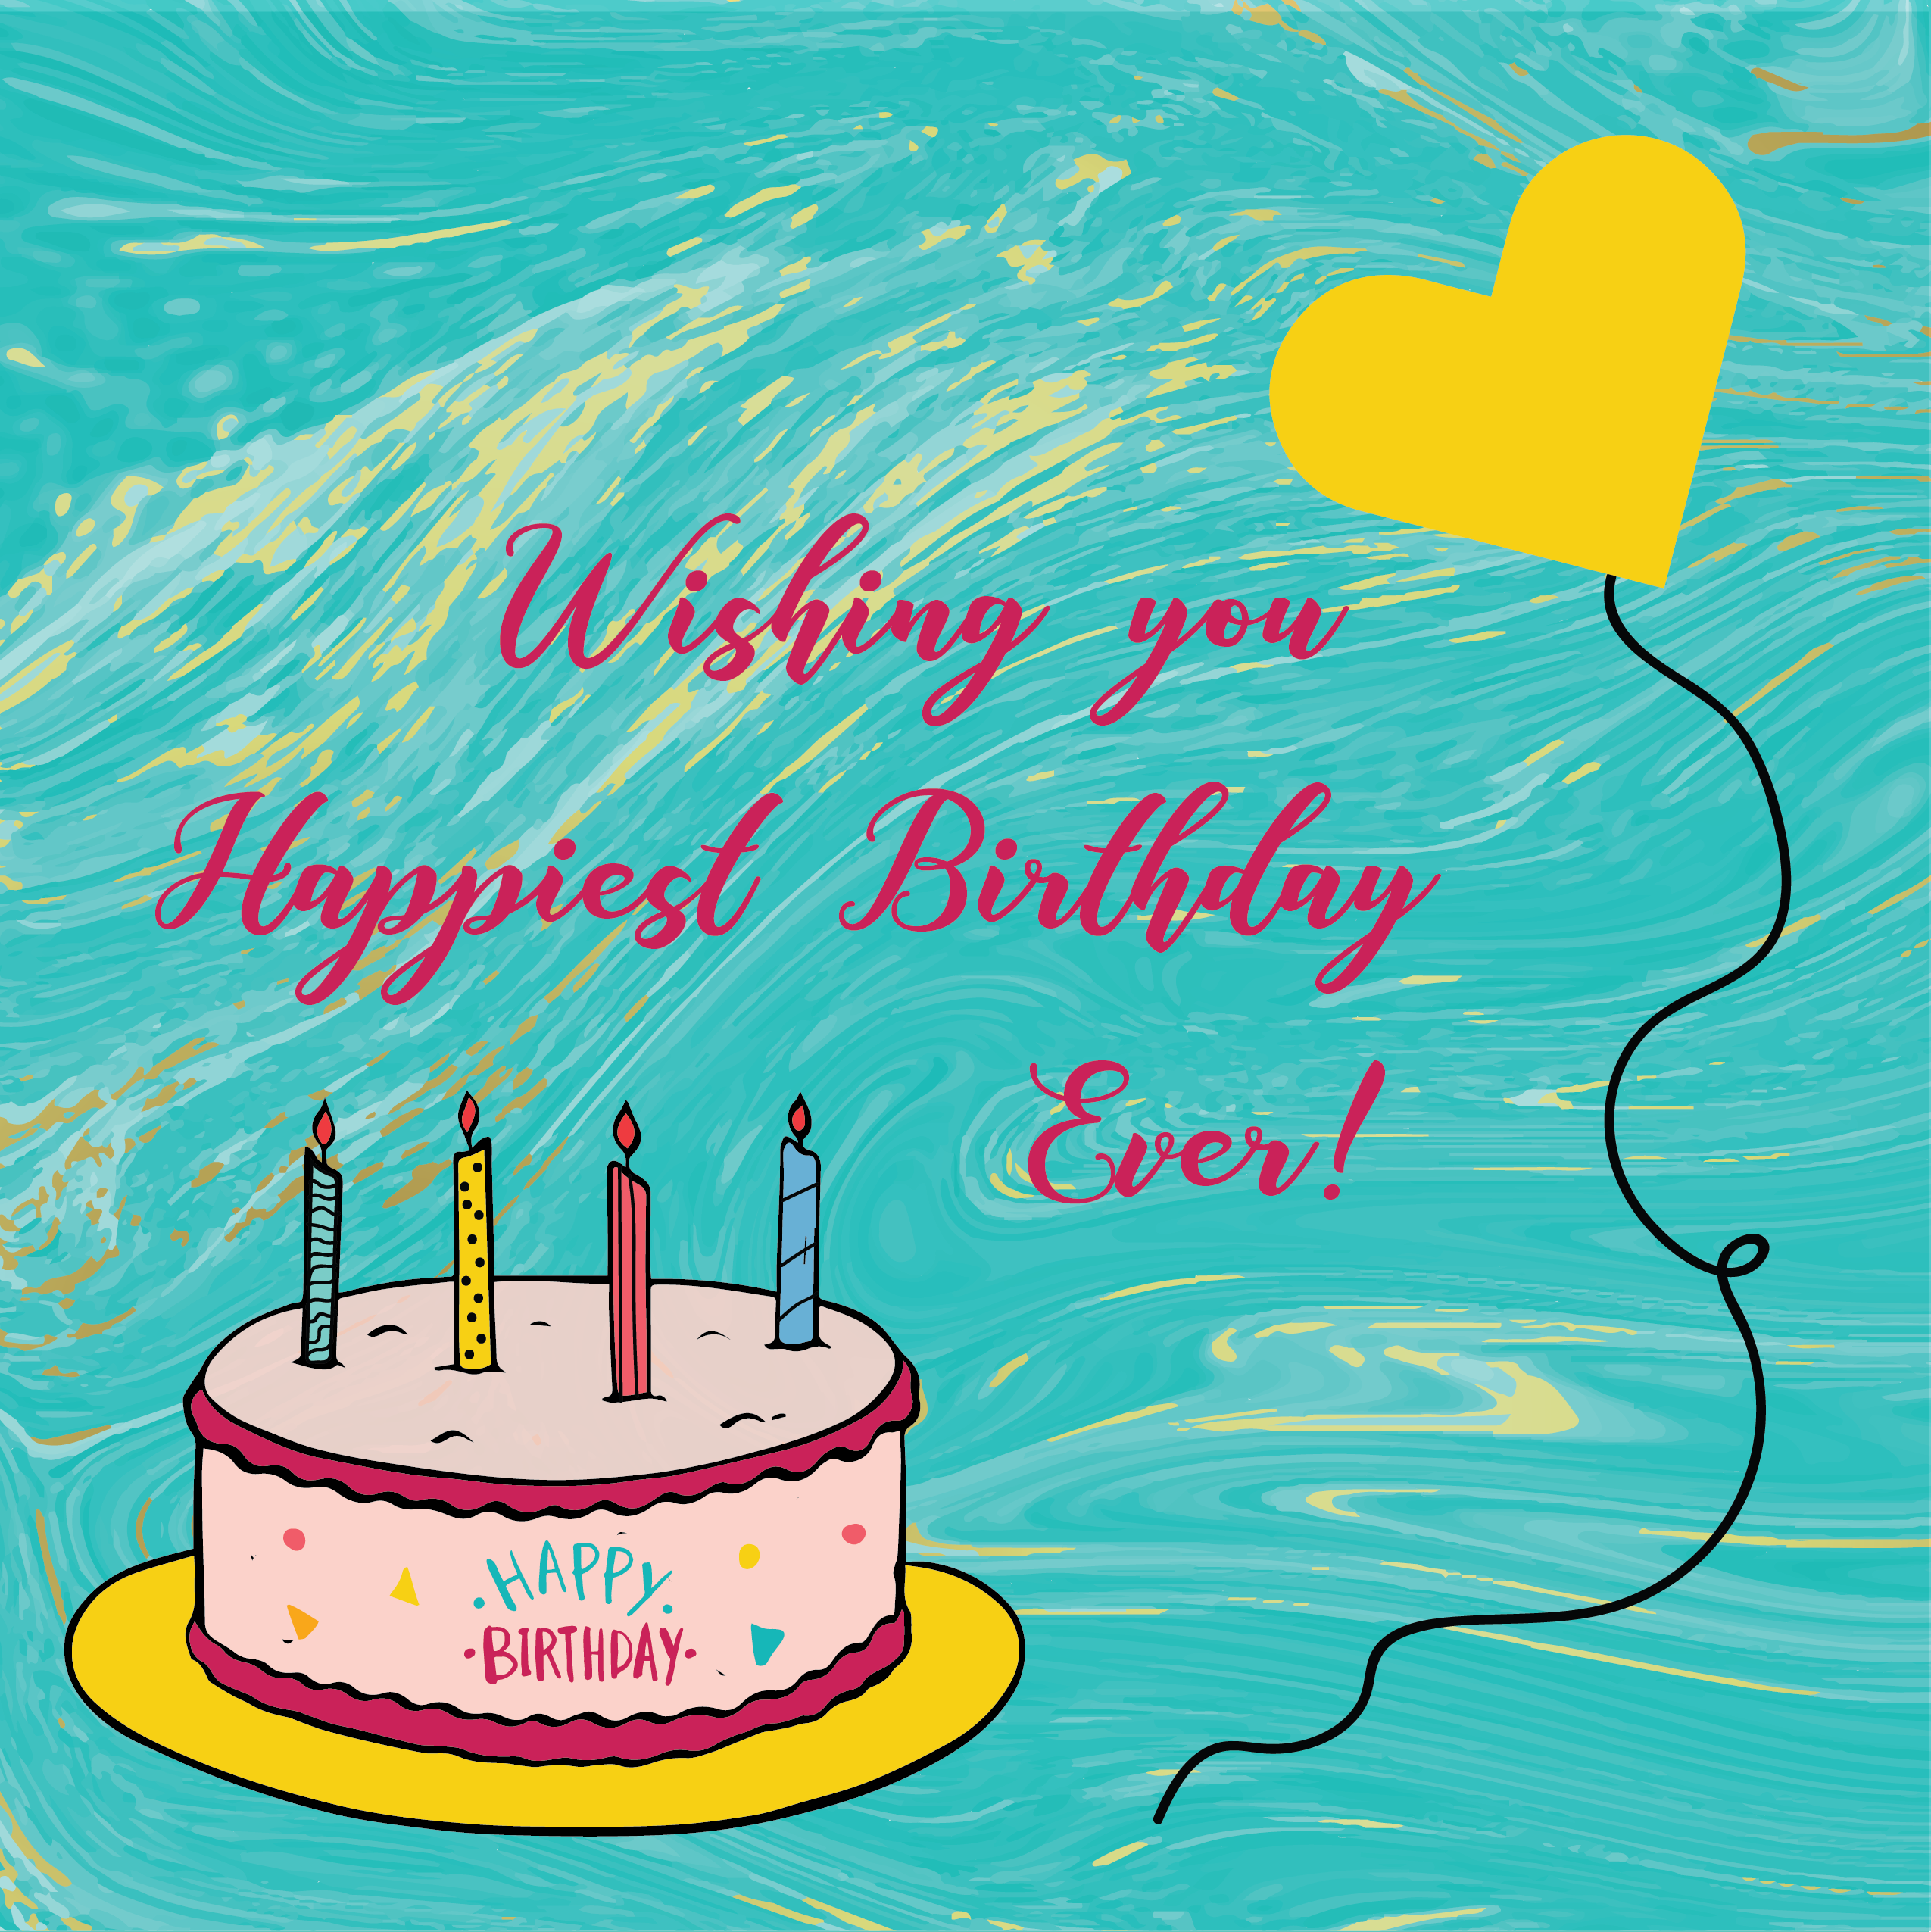 200 happy birthday wishes amp quotes with funny amp cute